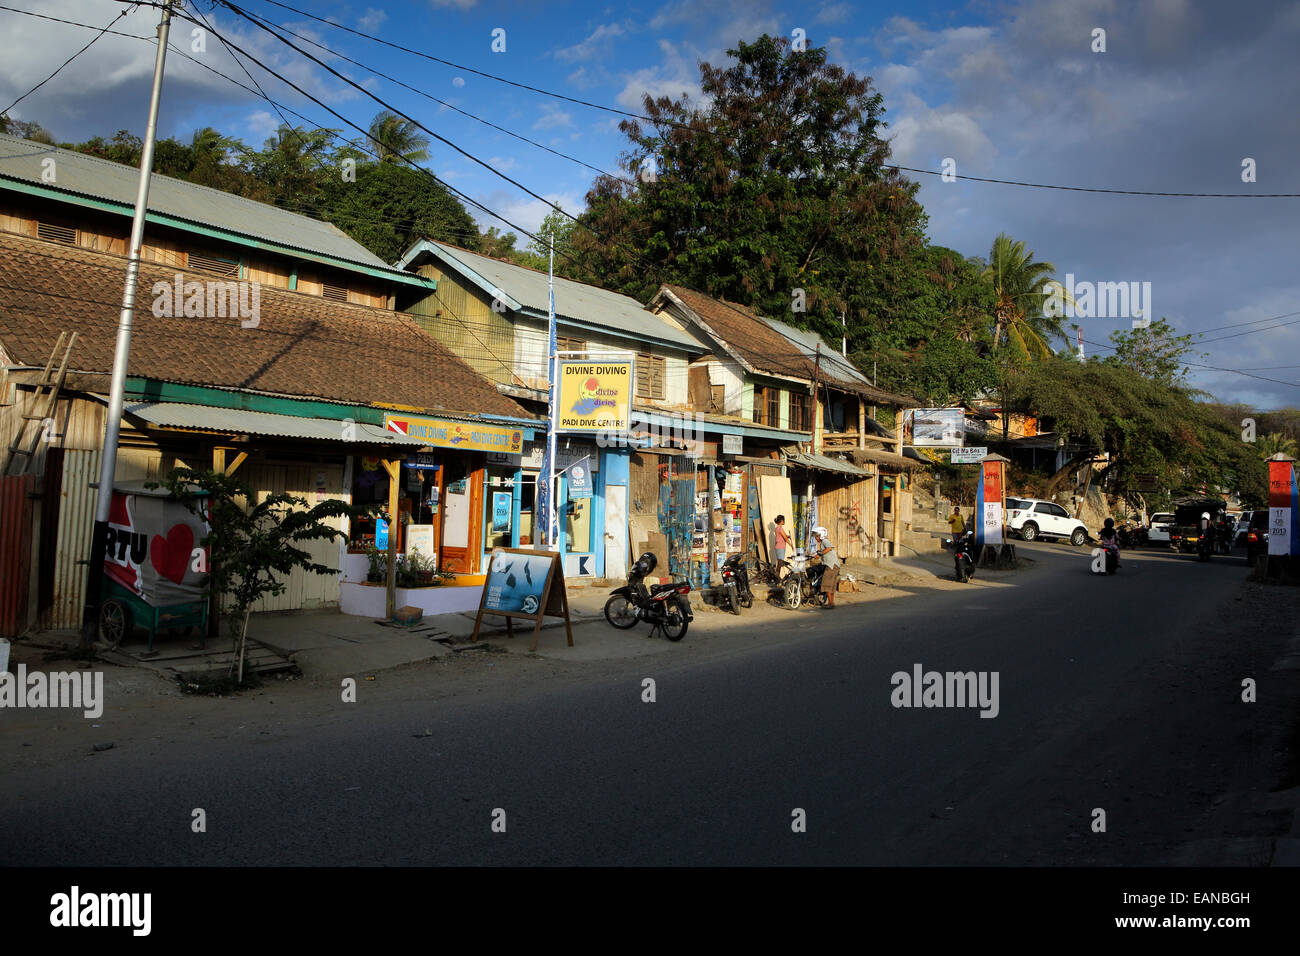 Scuba diving shops on main street of Labuan Bajo in west Flores - Stock Image